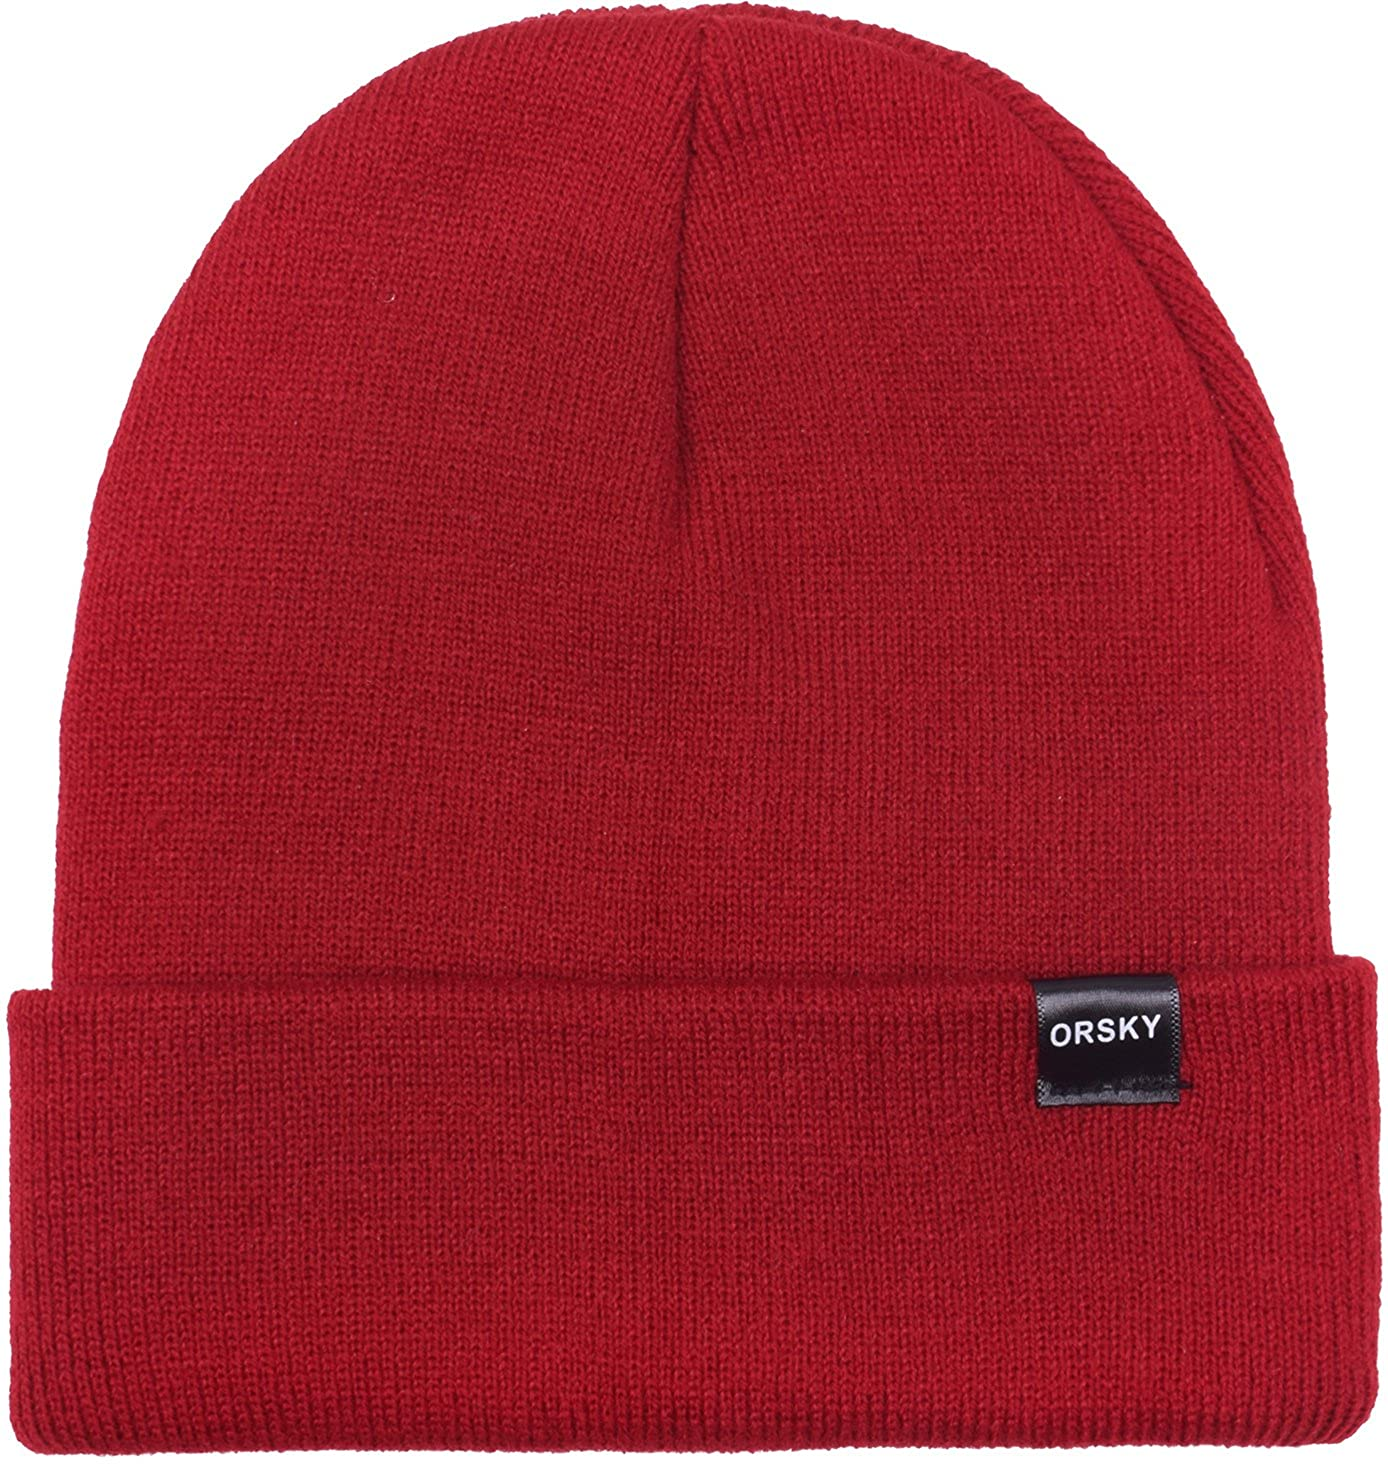 27581855029 Amazon.com  Funny Beanie Hats for Boys Girls Winter Warm Caps for Kids Soft  Cuff Dark Red  Clothing